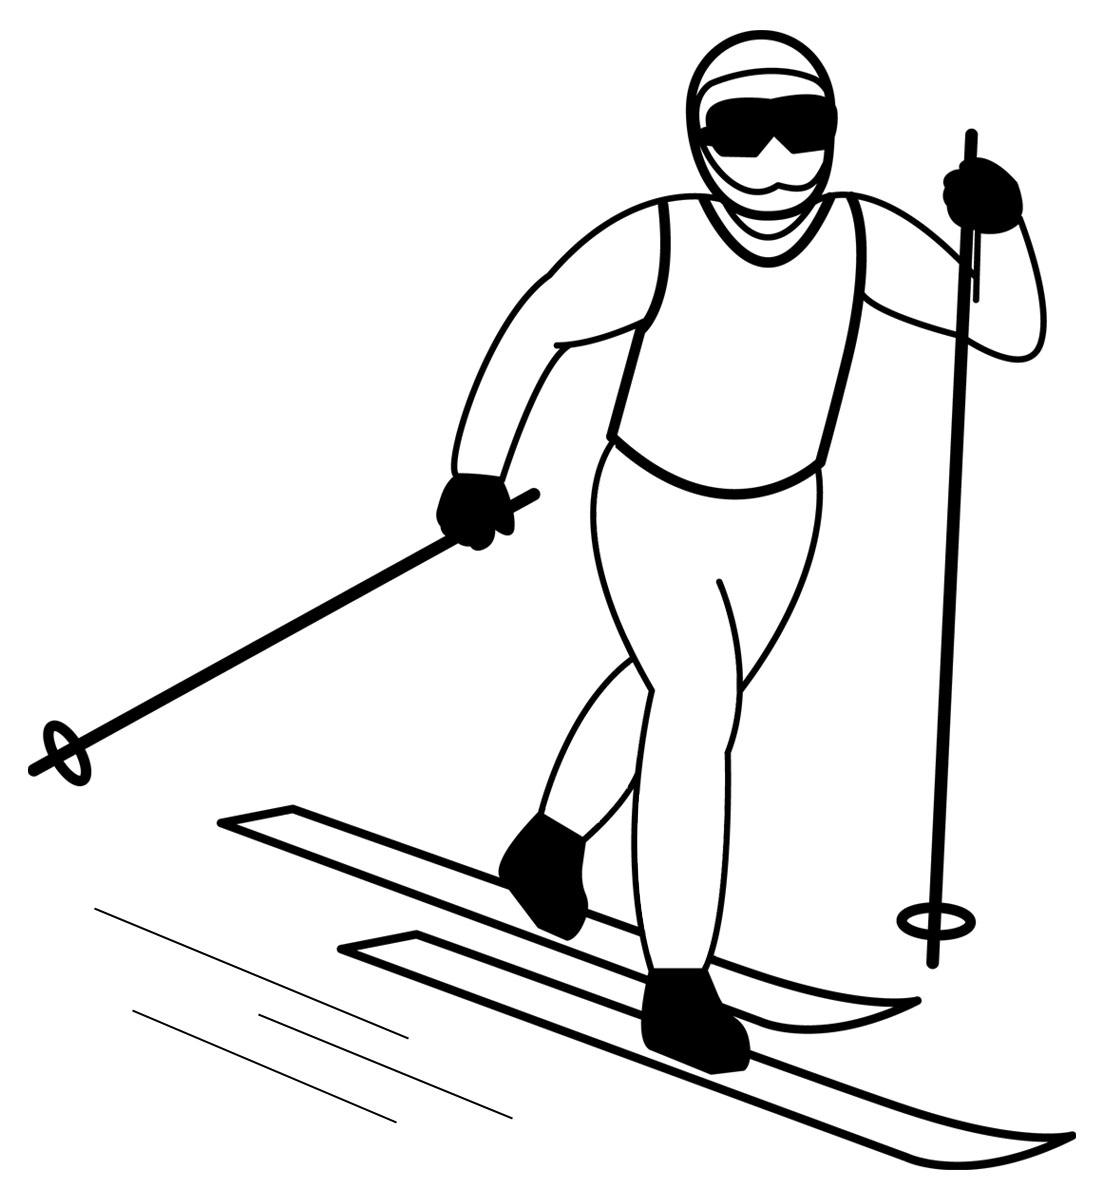 Skiing clipart downhill skiing Clip Download Clip Snowboard Cross